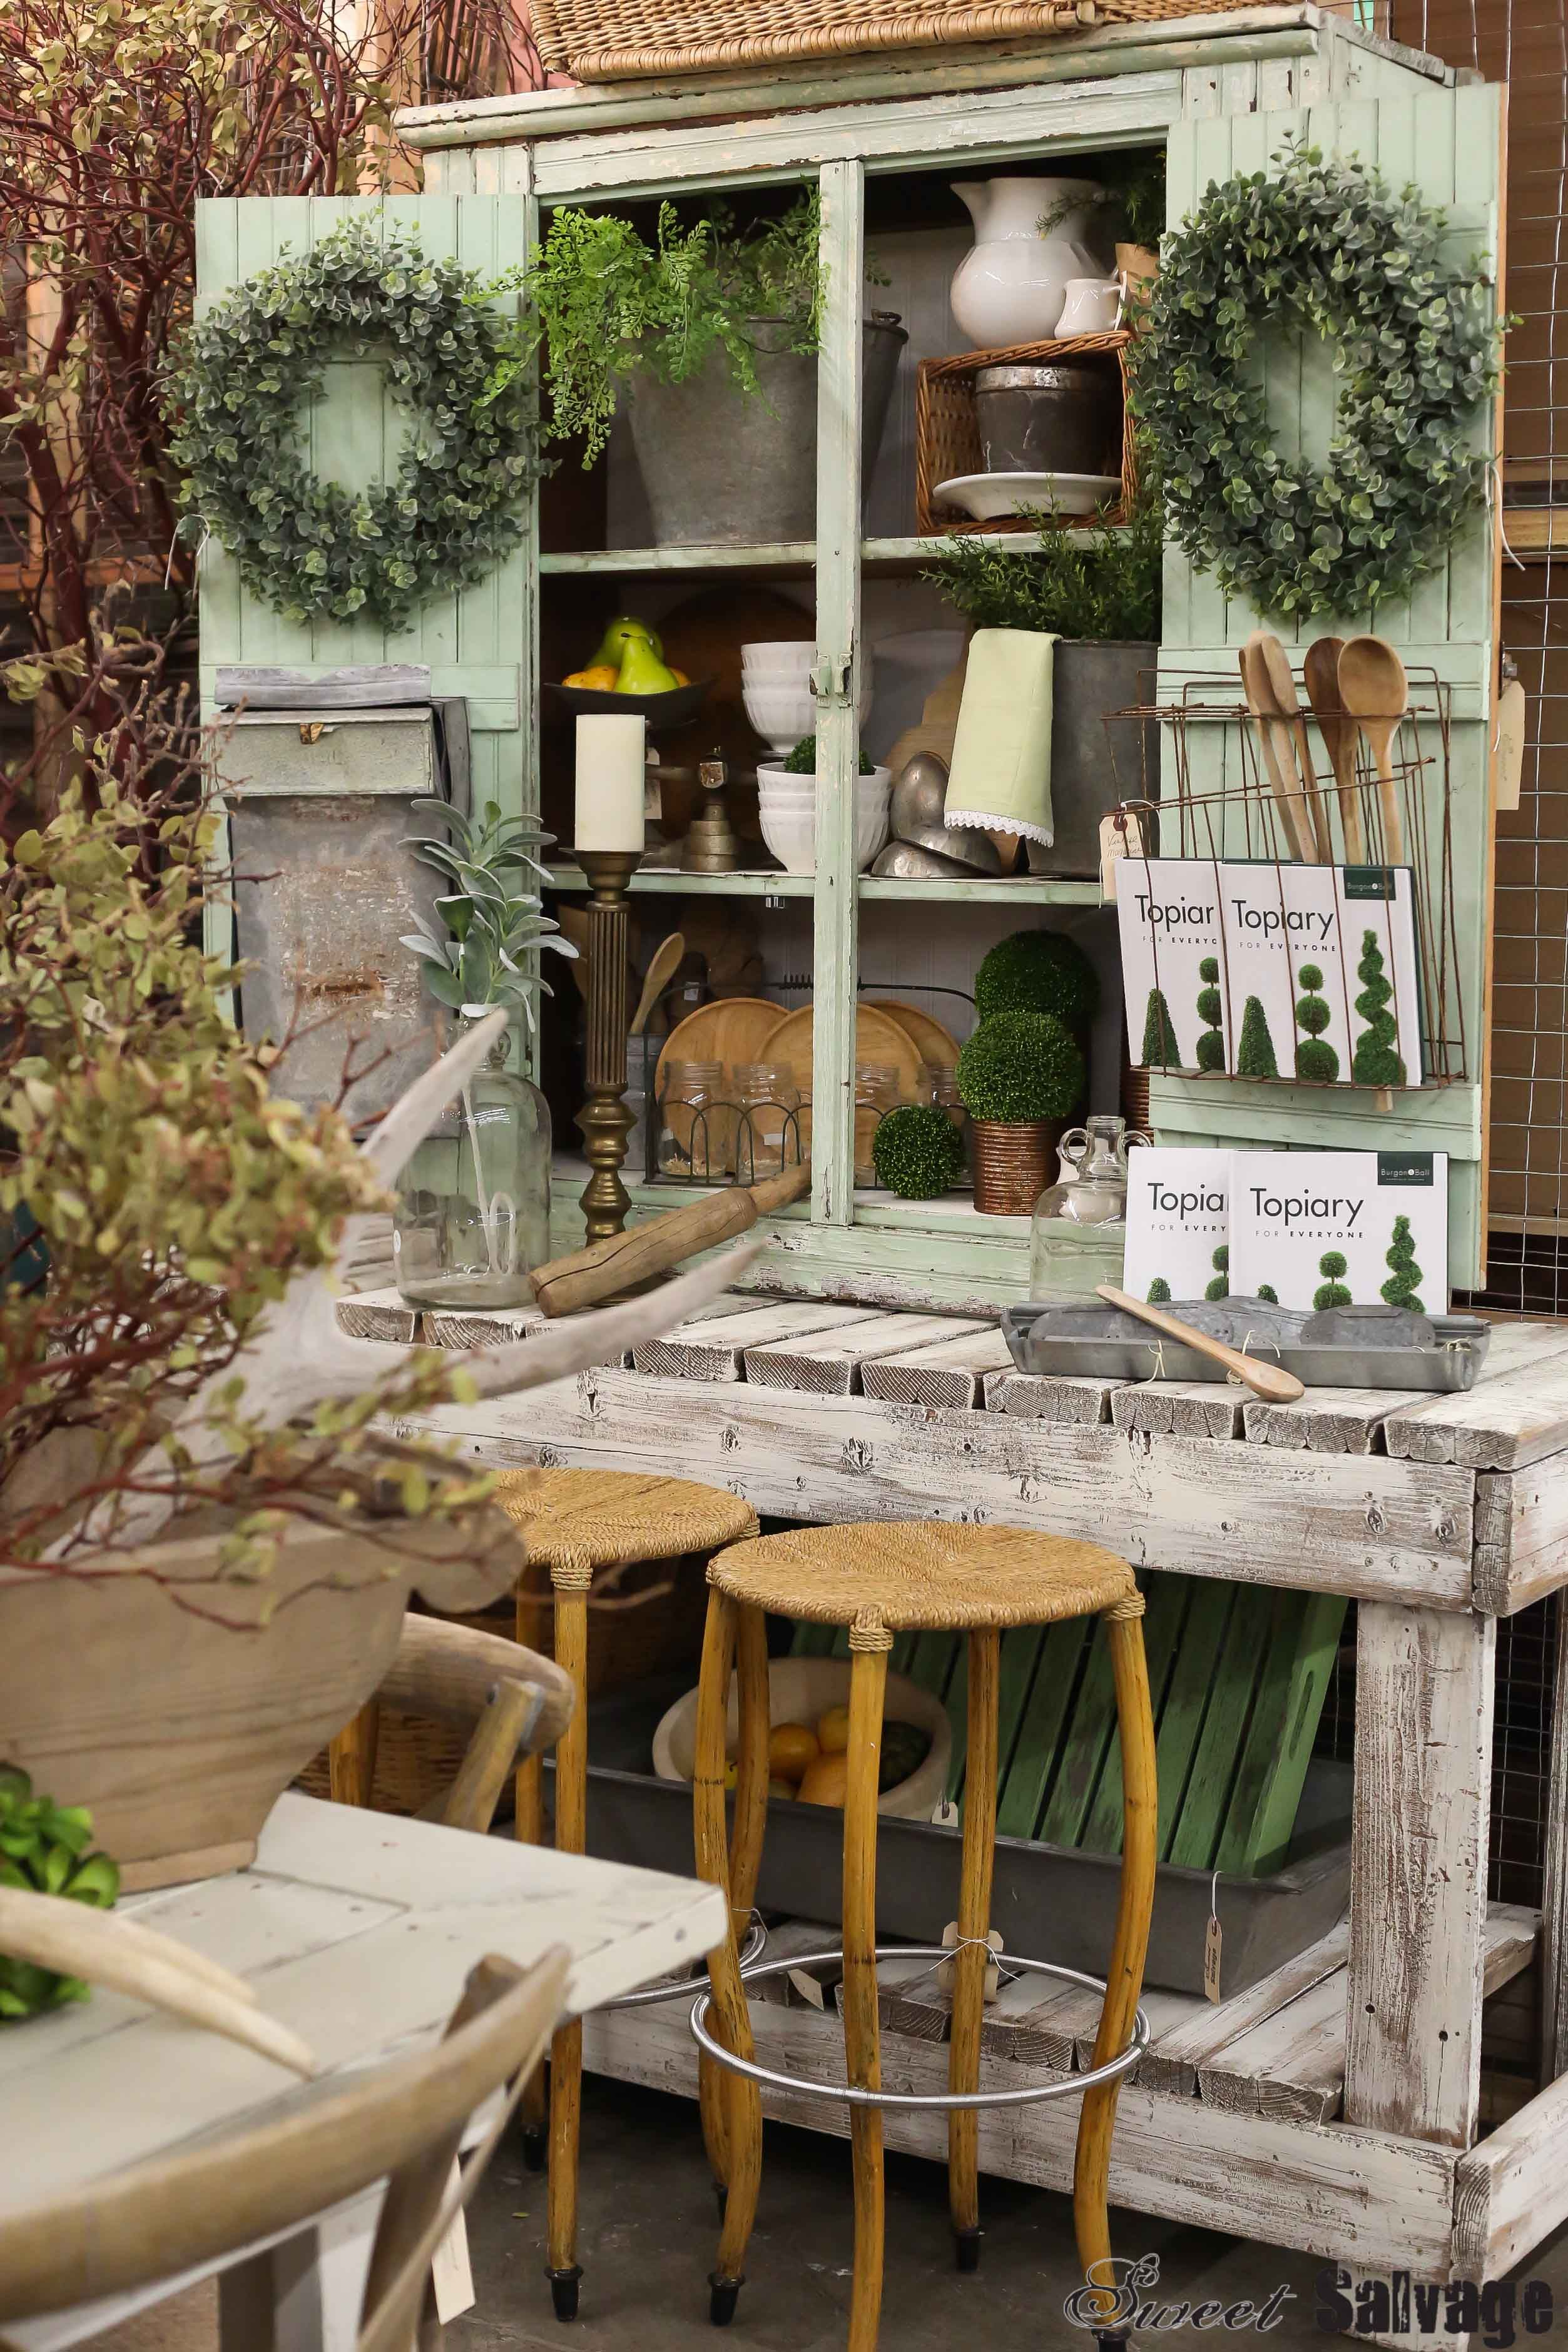 Where In The World 17 Garden Shed Interiors Shed Interior